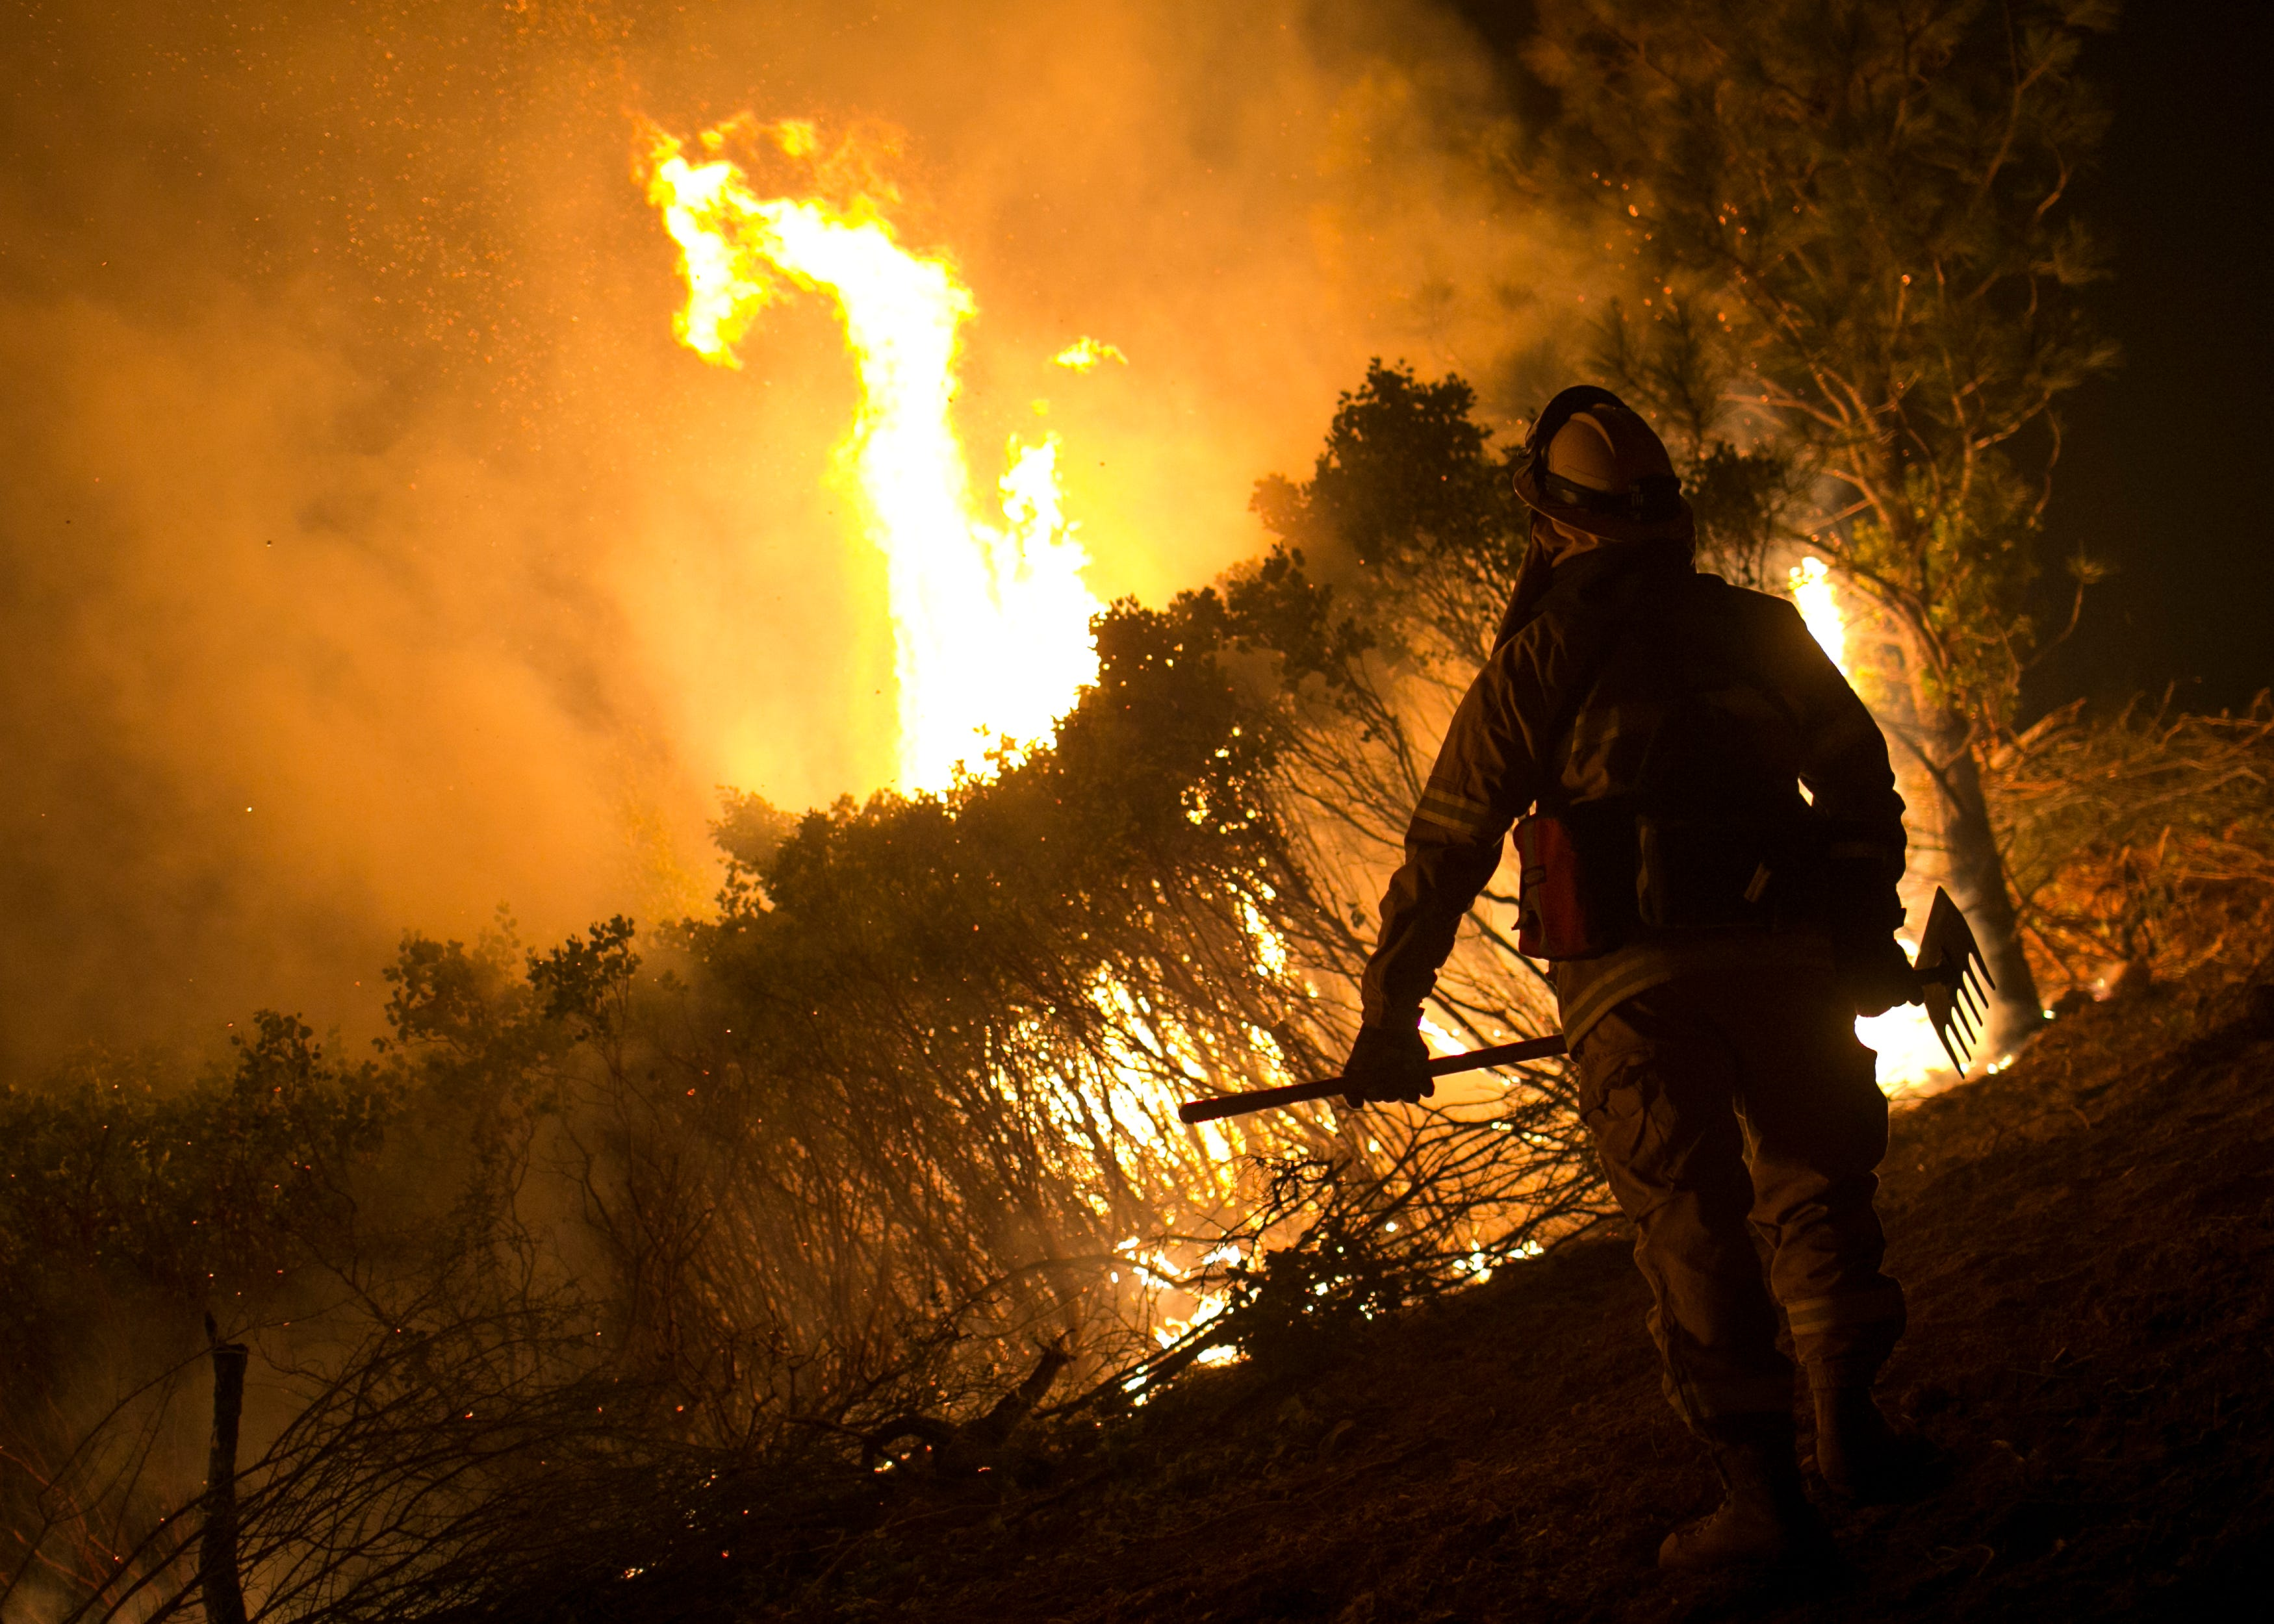 A firefighter stands watch over a controlled burn to fight the Camp Fire in Butte County, California, on Nov. 14. 2018.